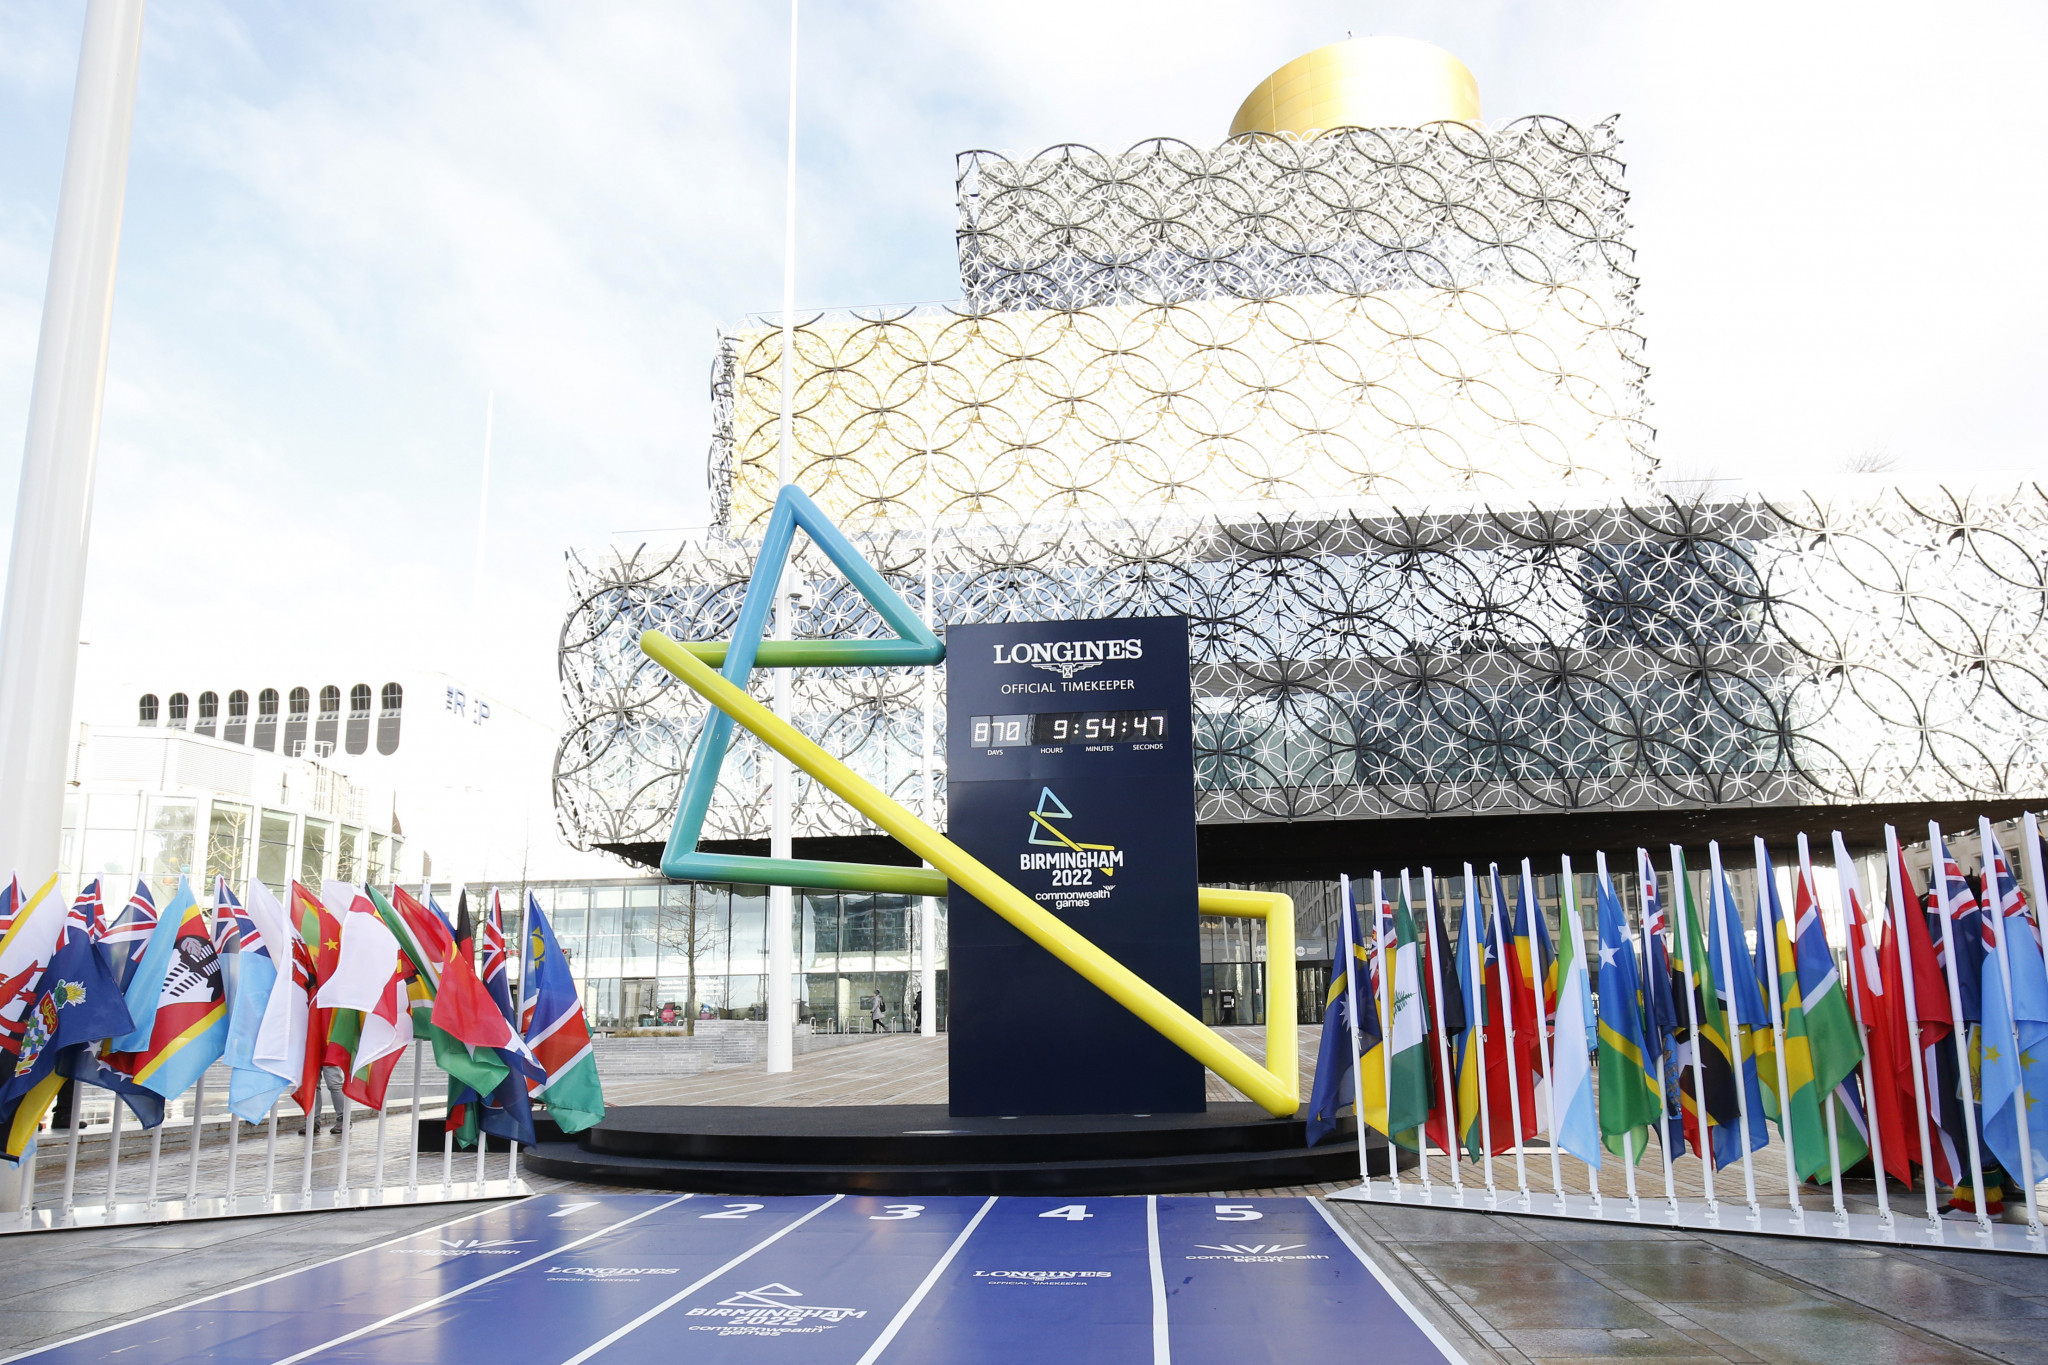 Birmingham 2022 launch countdown clock as part of new CGF partnership with Longines